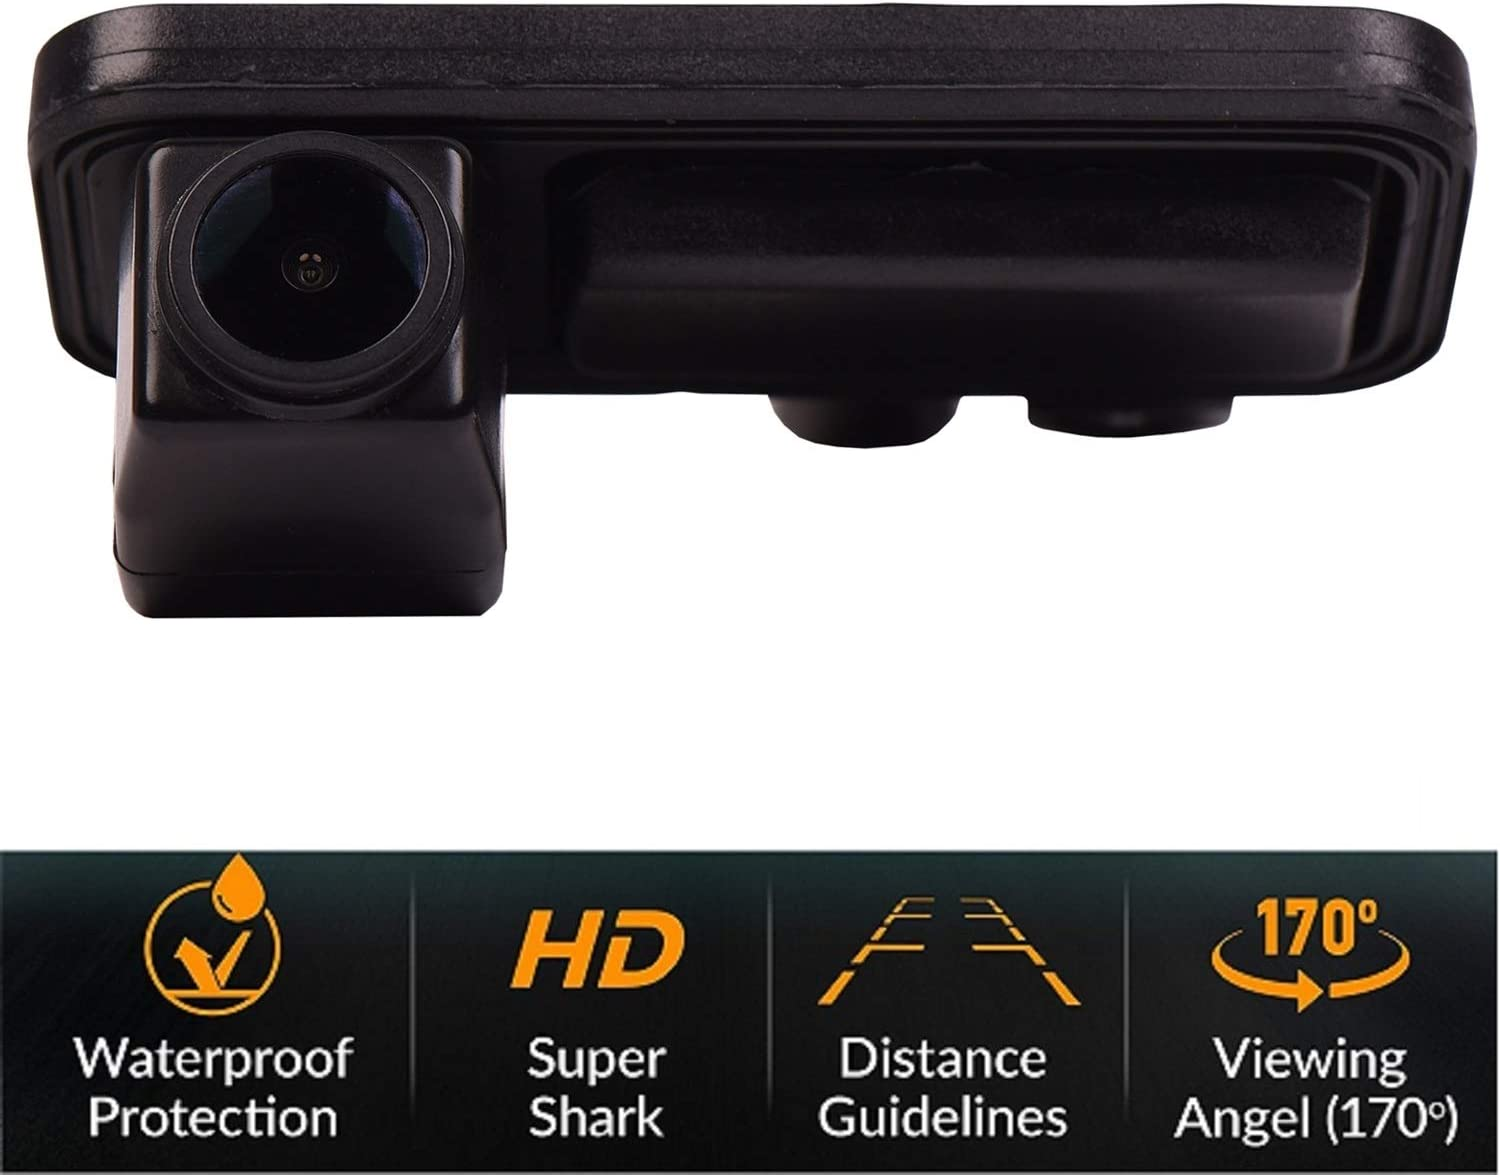 HD 1280x720p Rear Reversing Backup Camera Rearview License Plate Camera Night Vision Ip68 Waterproof for Mercedes Benz GLK Class X204 GLK280 GLK300 GLK350 GLK200 GLK220 GLK250 GLK320 CD